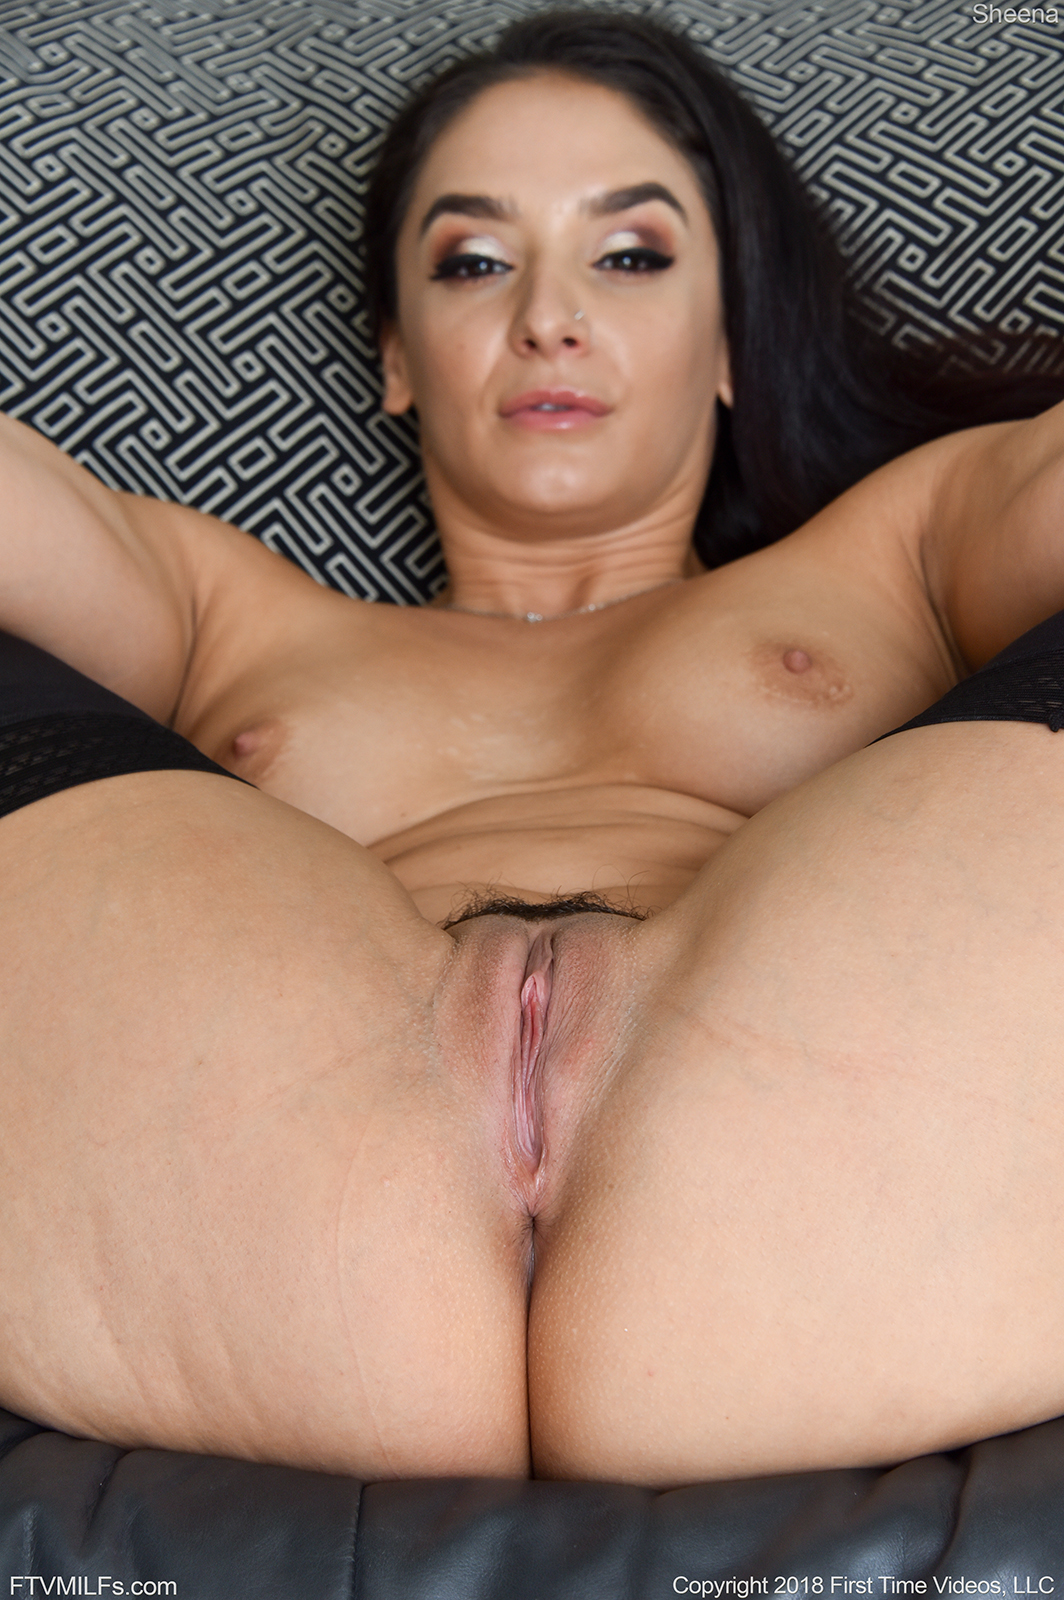 sheena ryder tube